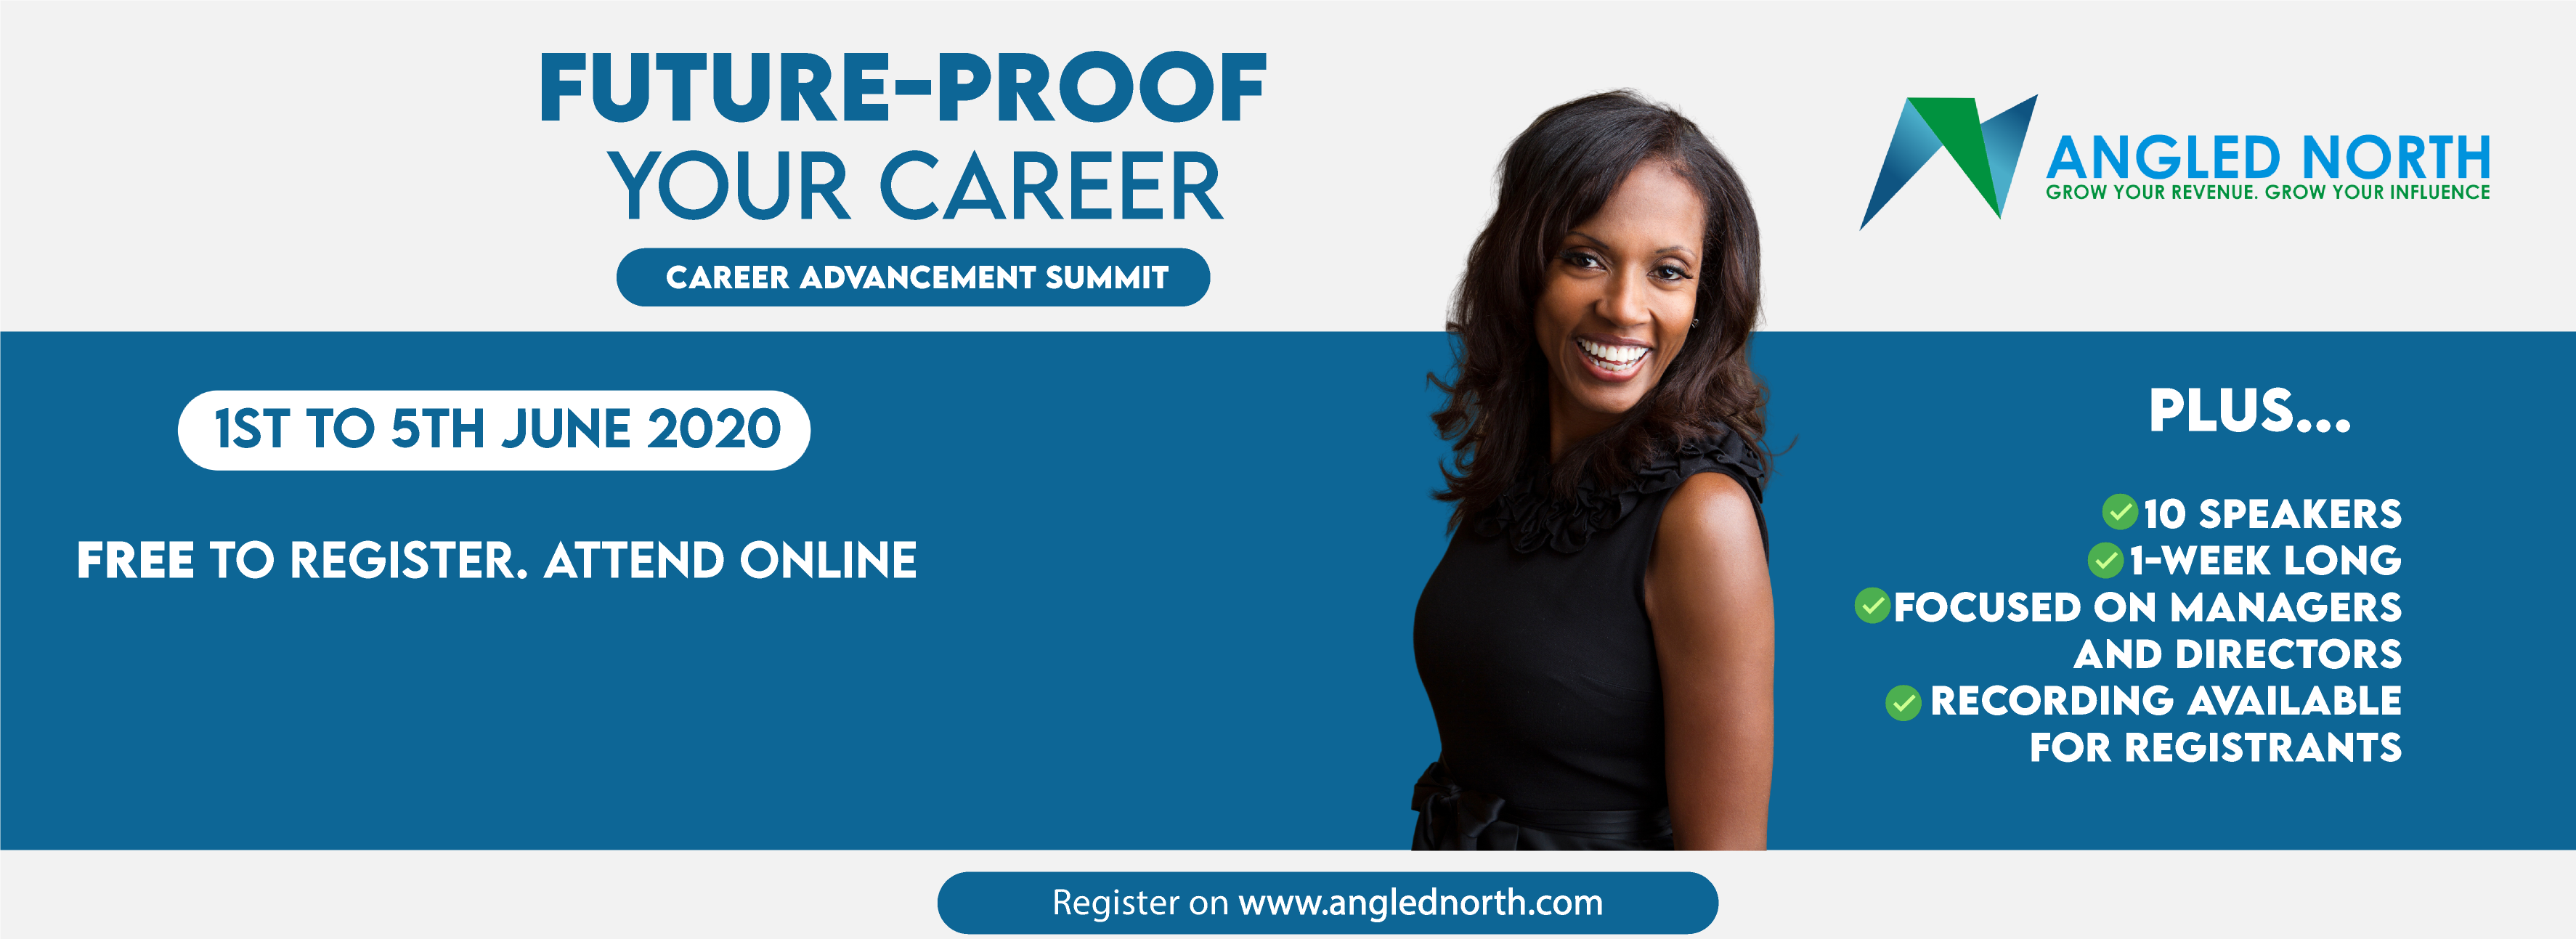 Career Advancement Summit